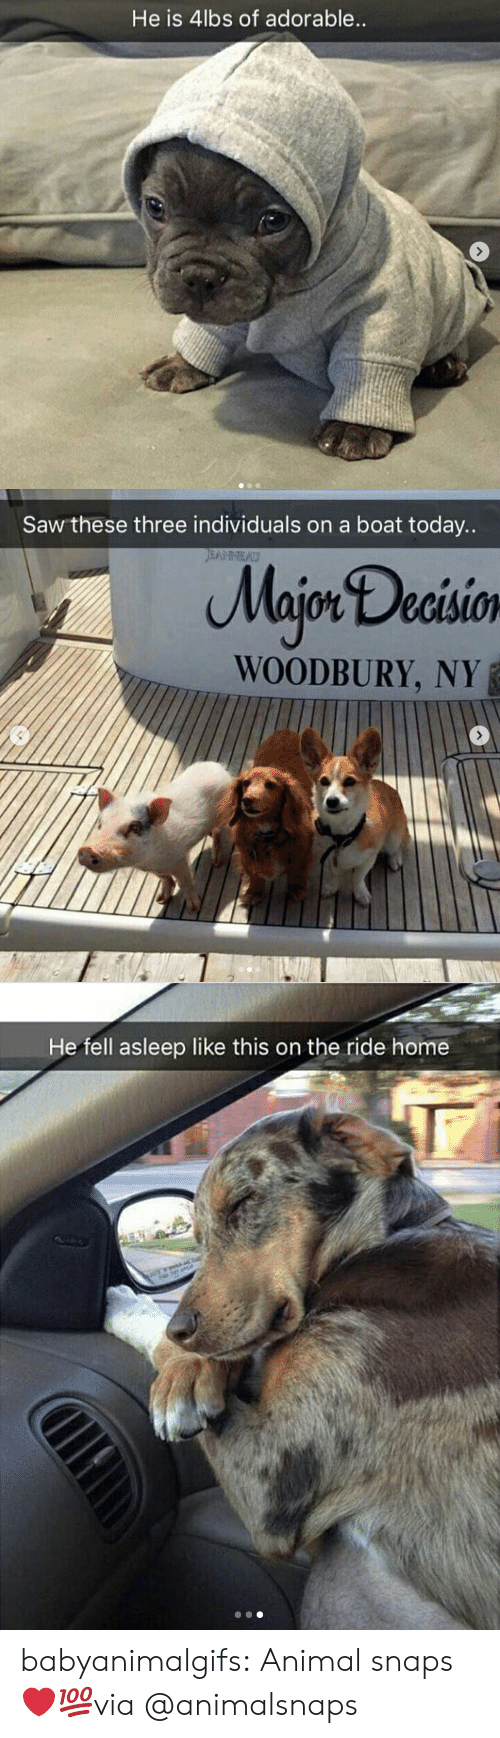 Saw, Tumblr, and Animal: He is 4lbs of adorable   Saw these three individuals on a boat today..  Majon Decisio  WOODBURY, NY   He fell asleep like this on the ride home babyanimalgifs:  Animal snaps ❤💯via @animalsnaps